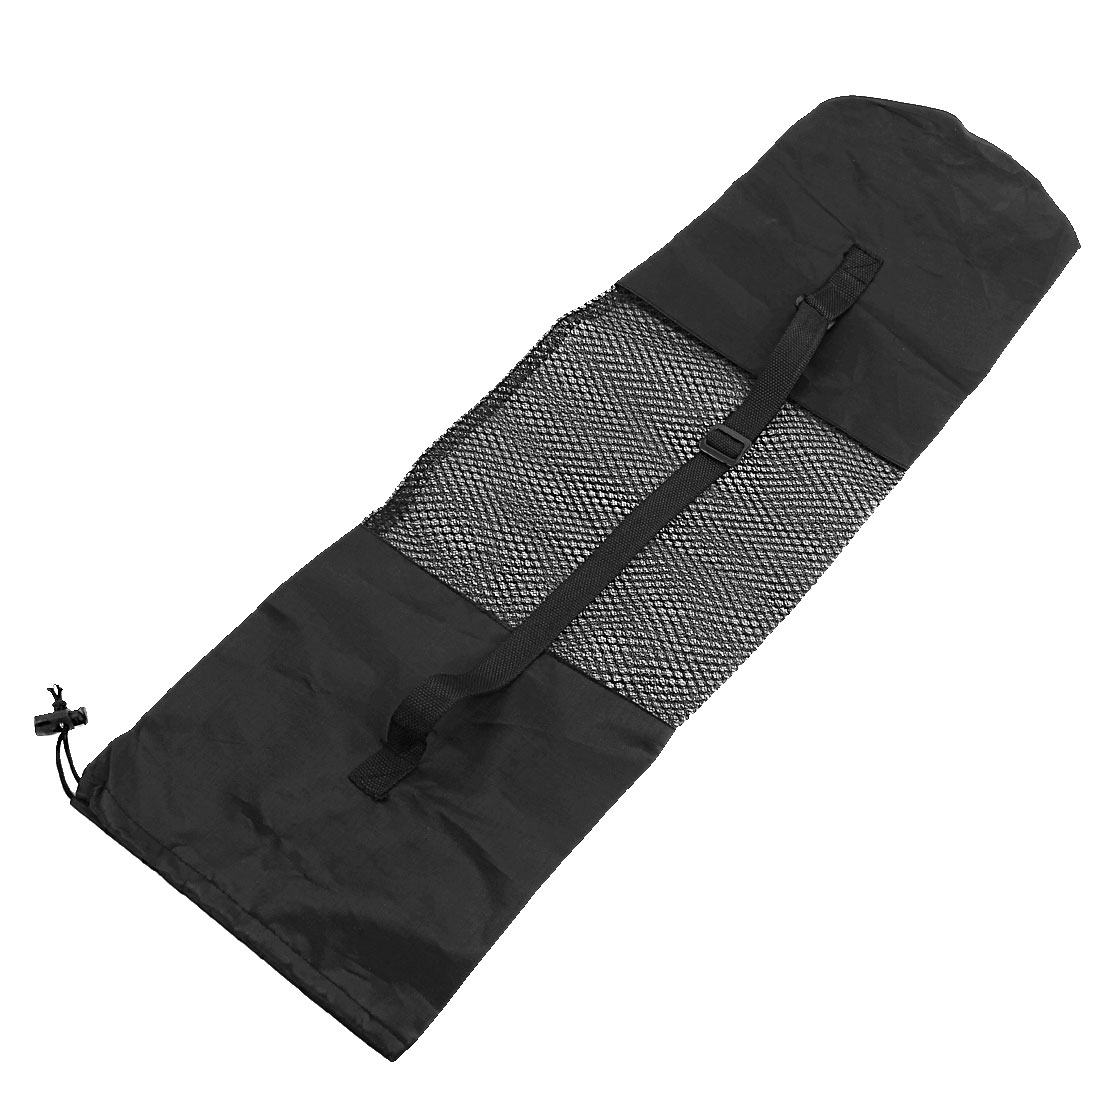 Adjustable Strap Black Nylon Yoga Pilates Mat Center Mesh Carrier Bag